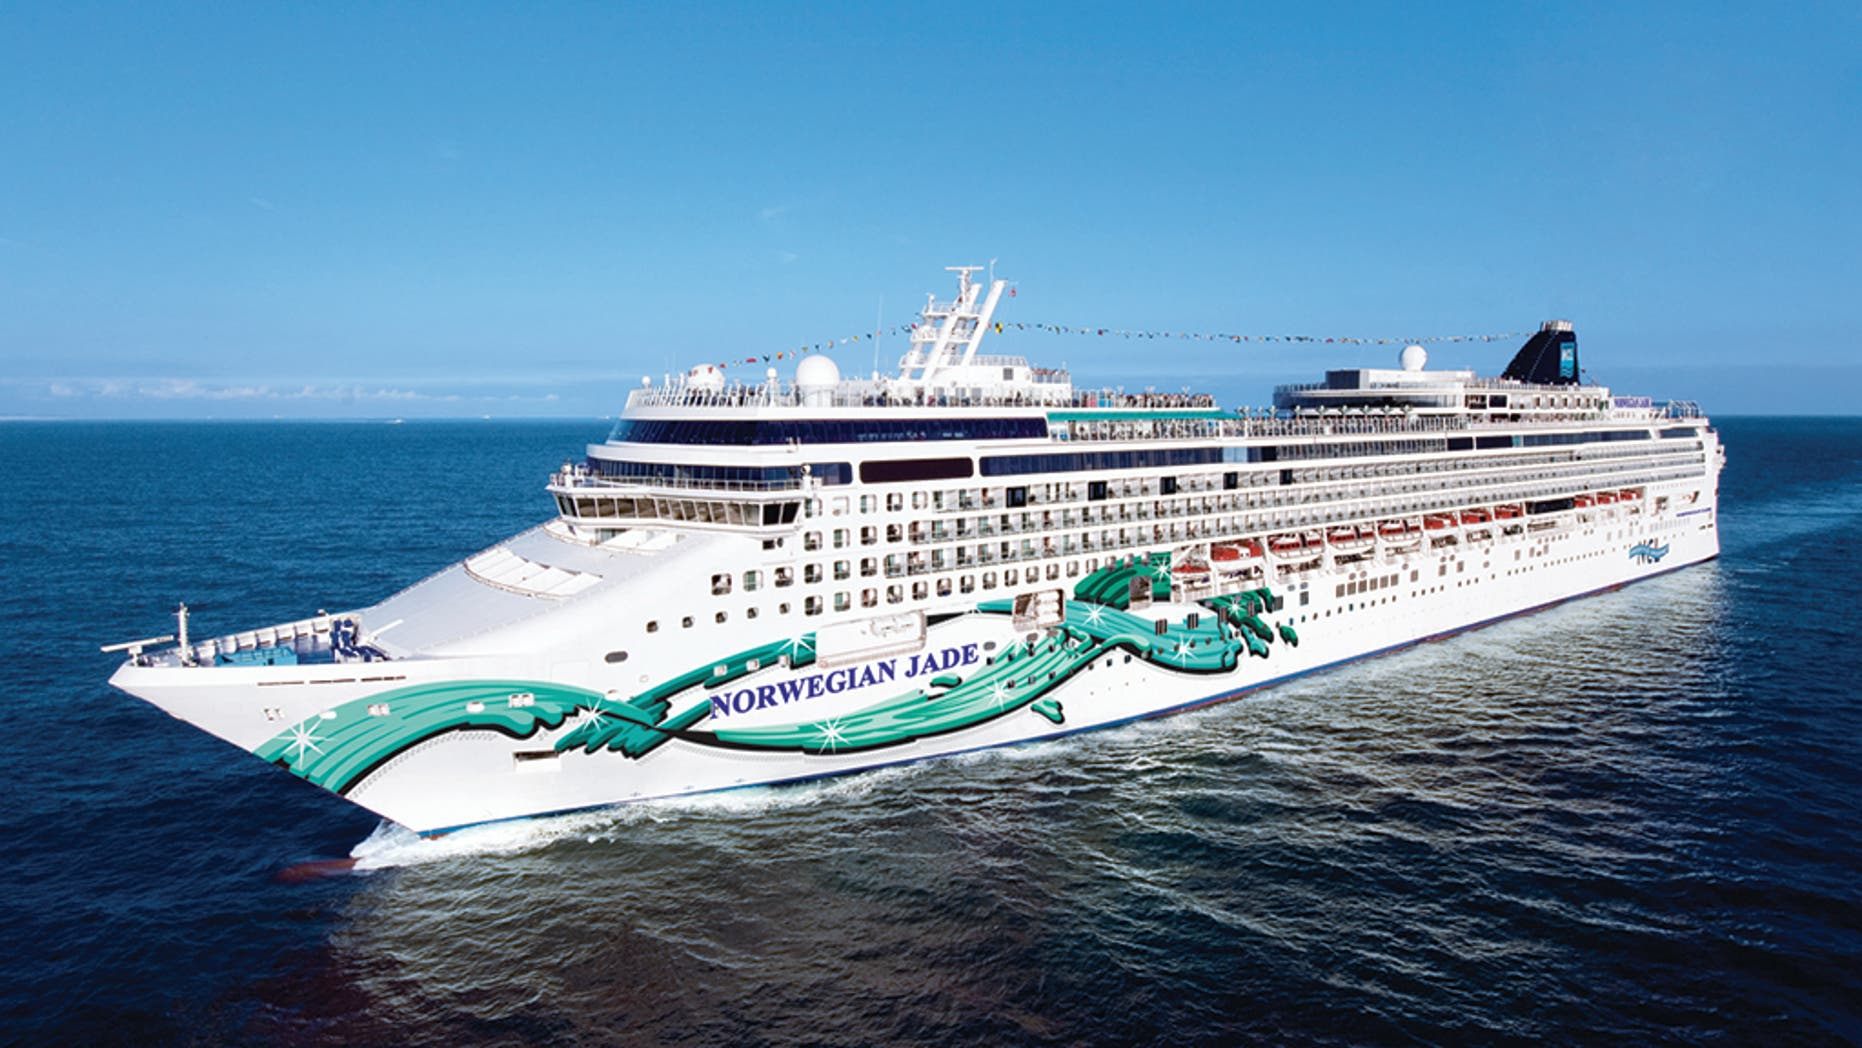 Thousands of passengers aboard Norwegian Cruise Line's Jade ship had their 10-day sojourn to the Caribbean cut short due to a mechanical issue, and are flying back stateside today from Puerto Rico.